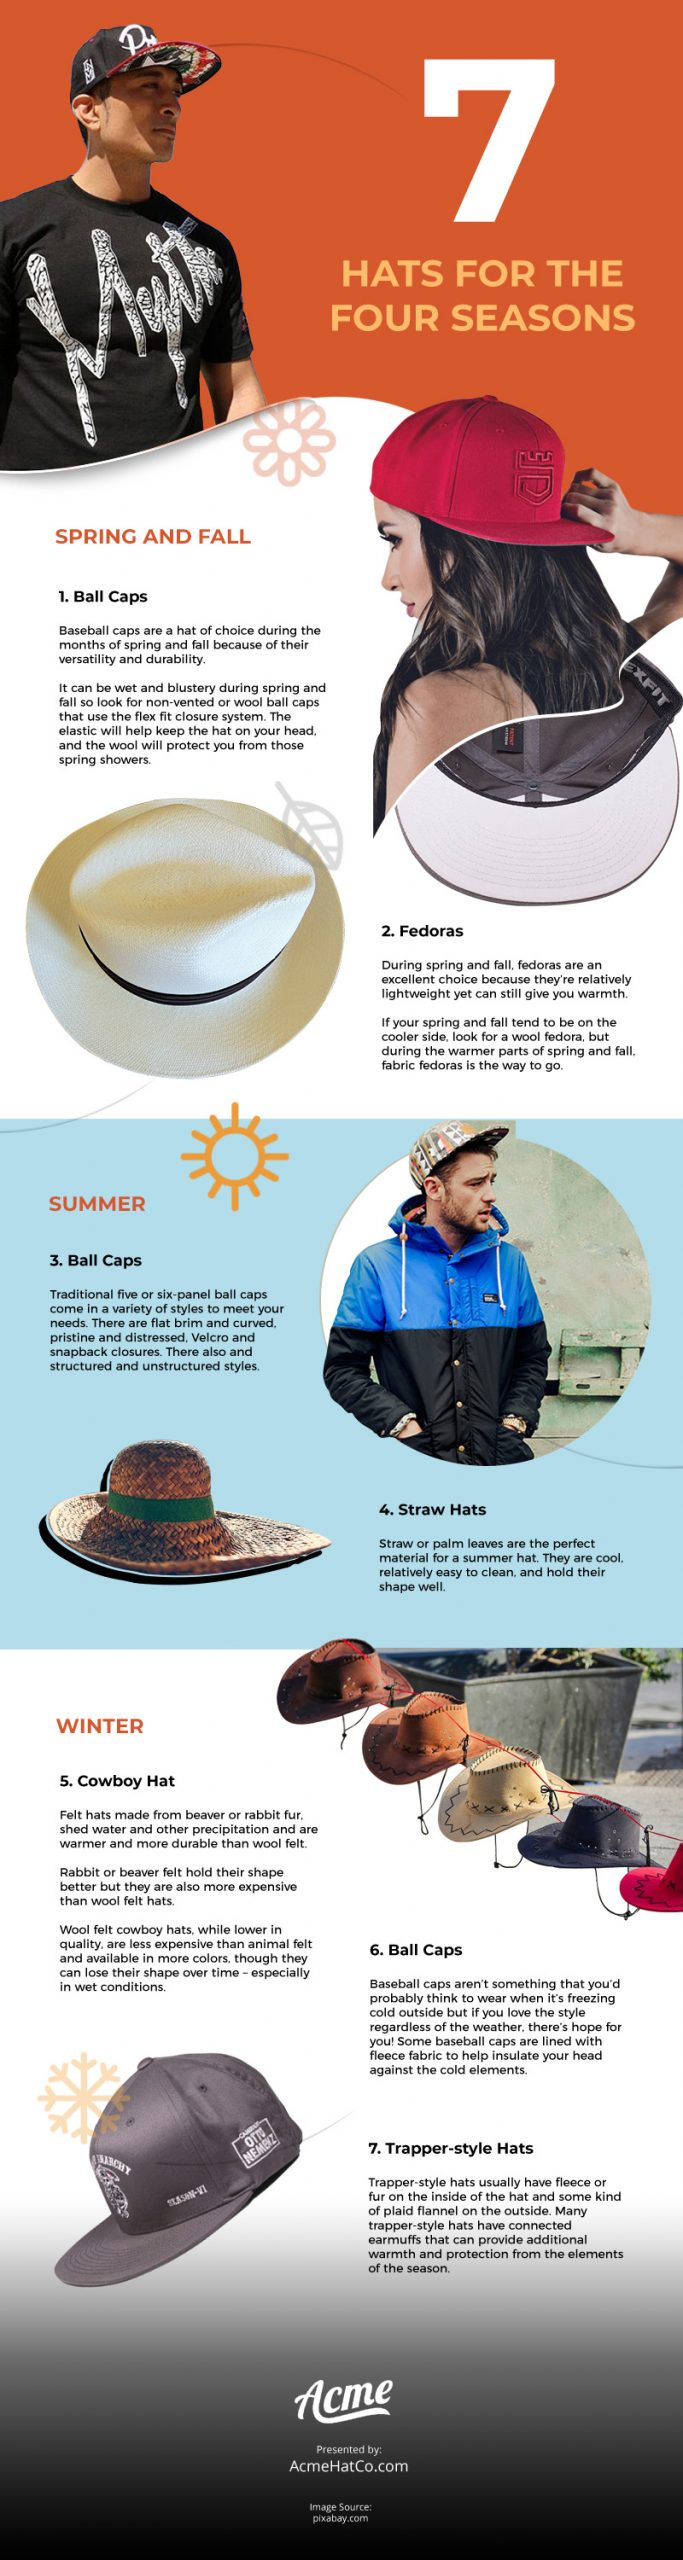 7 Hats for the Four Seasons